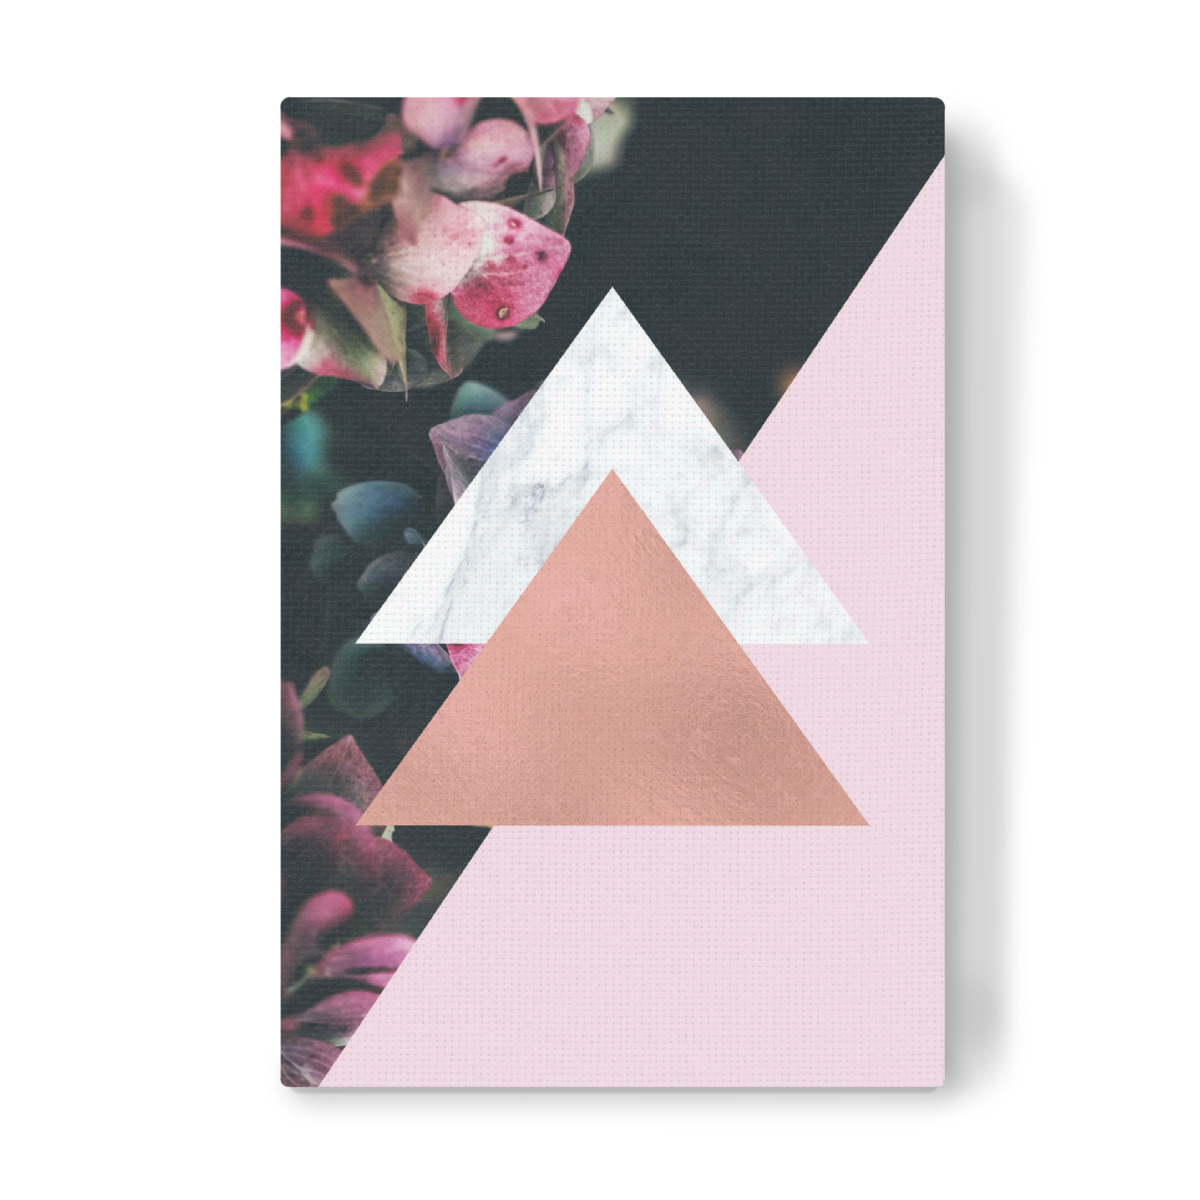 Purchase the Rose Gold Foil Geometric Floral as a Canvas at